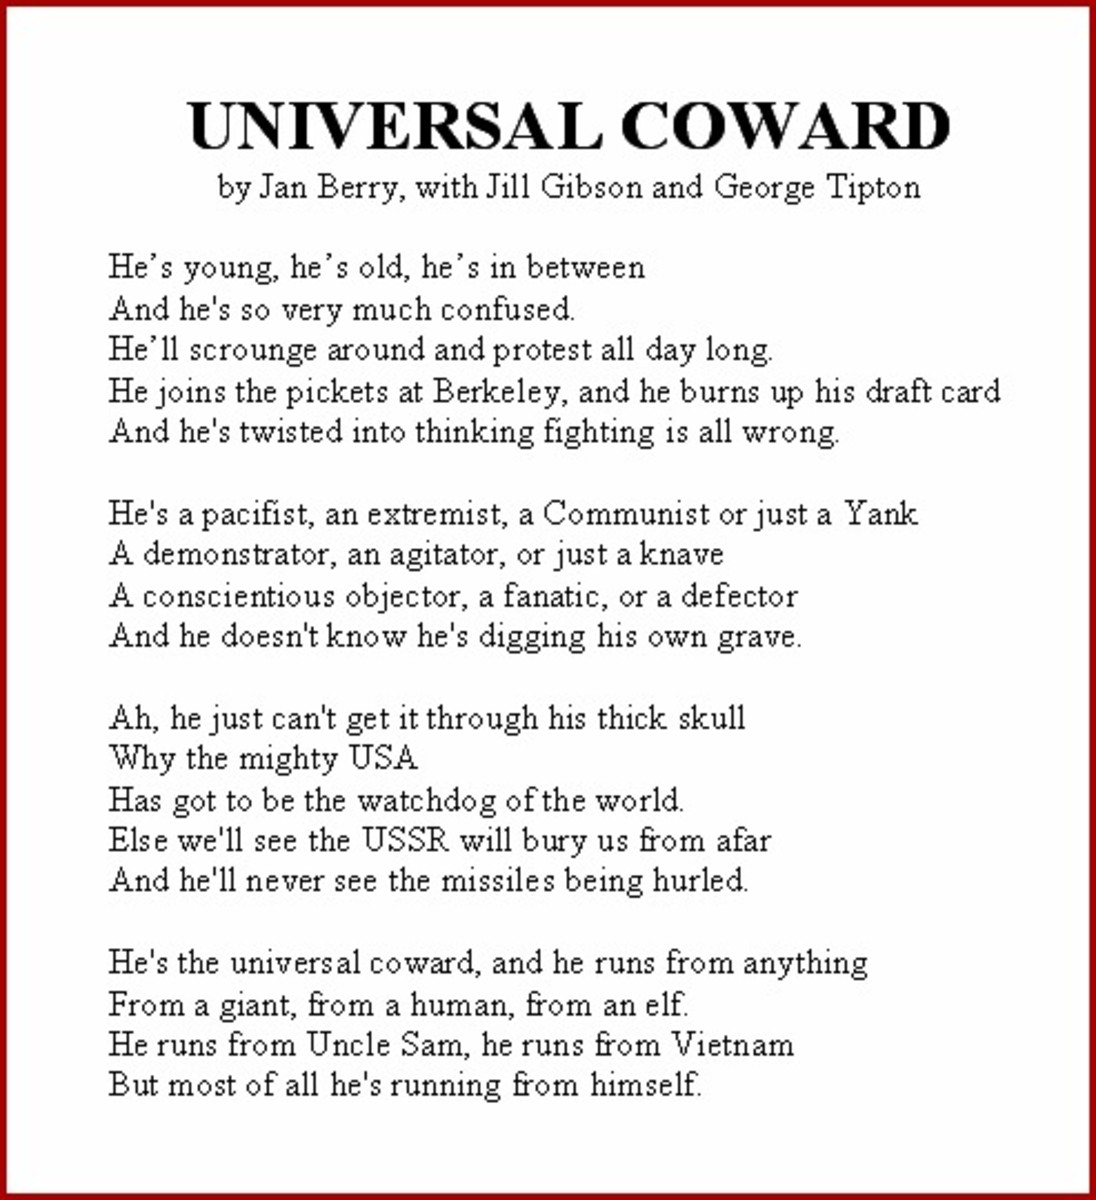 Universal Coward Vietnam War Song Lyrics